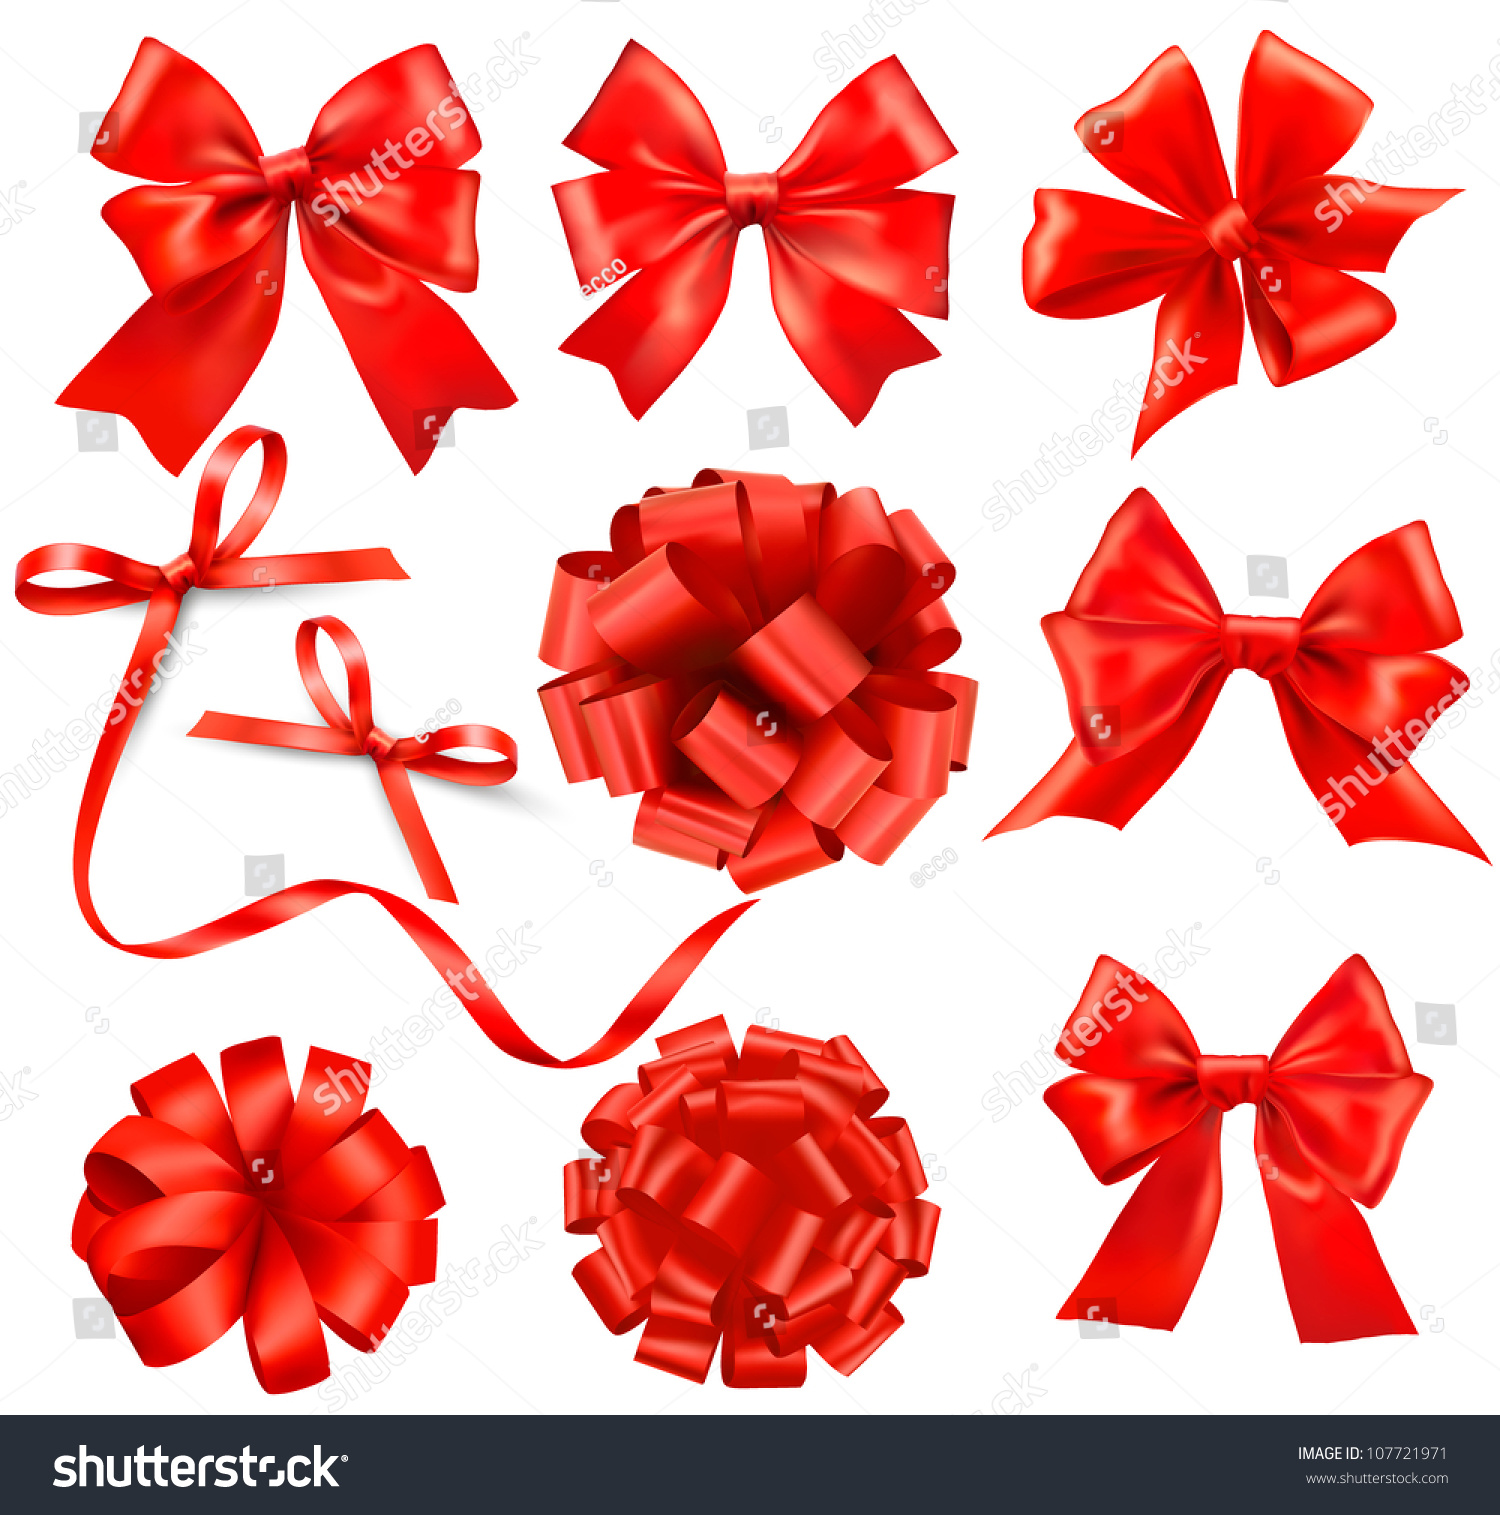 Big set red gift bows ribbons stock vector 107721971 shutterstock big set of red gift bows with ribbons vector negle Image collections